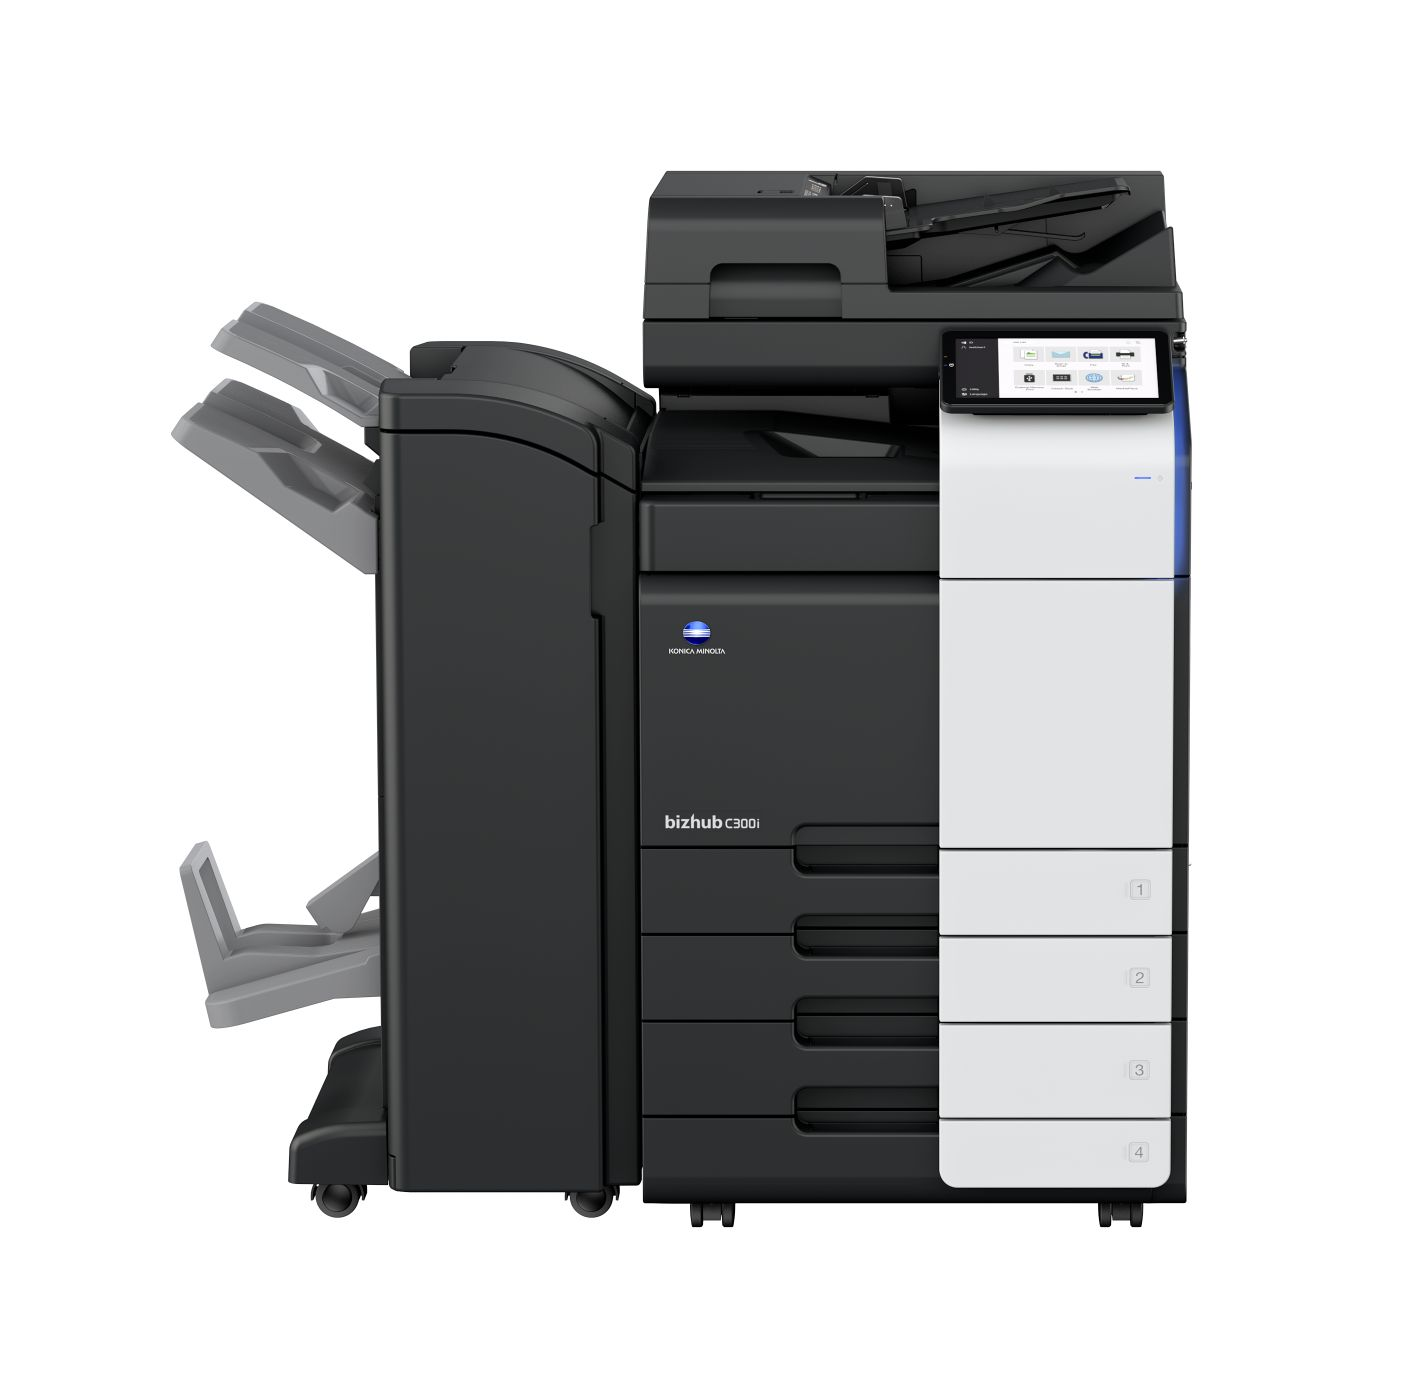 bizhub C300i with finisher.jpg